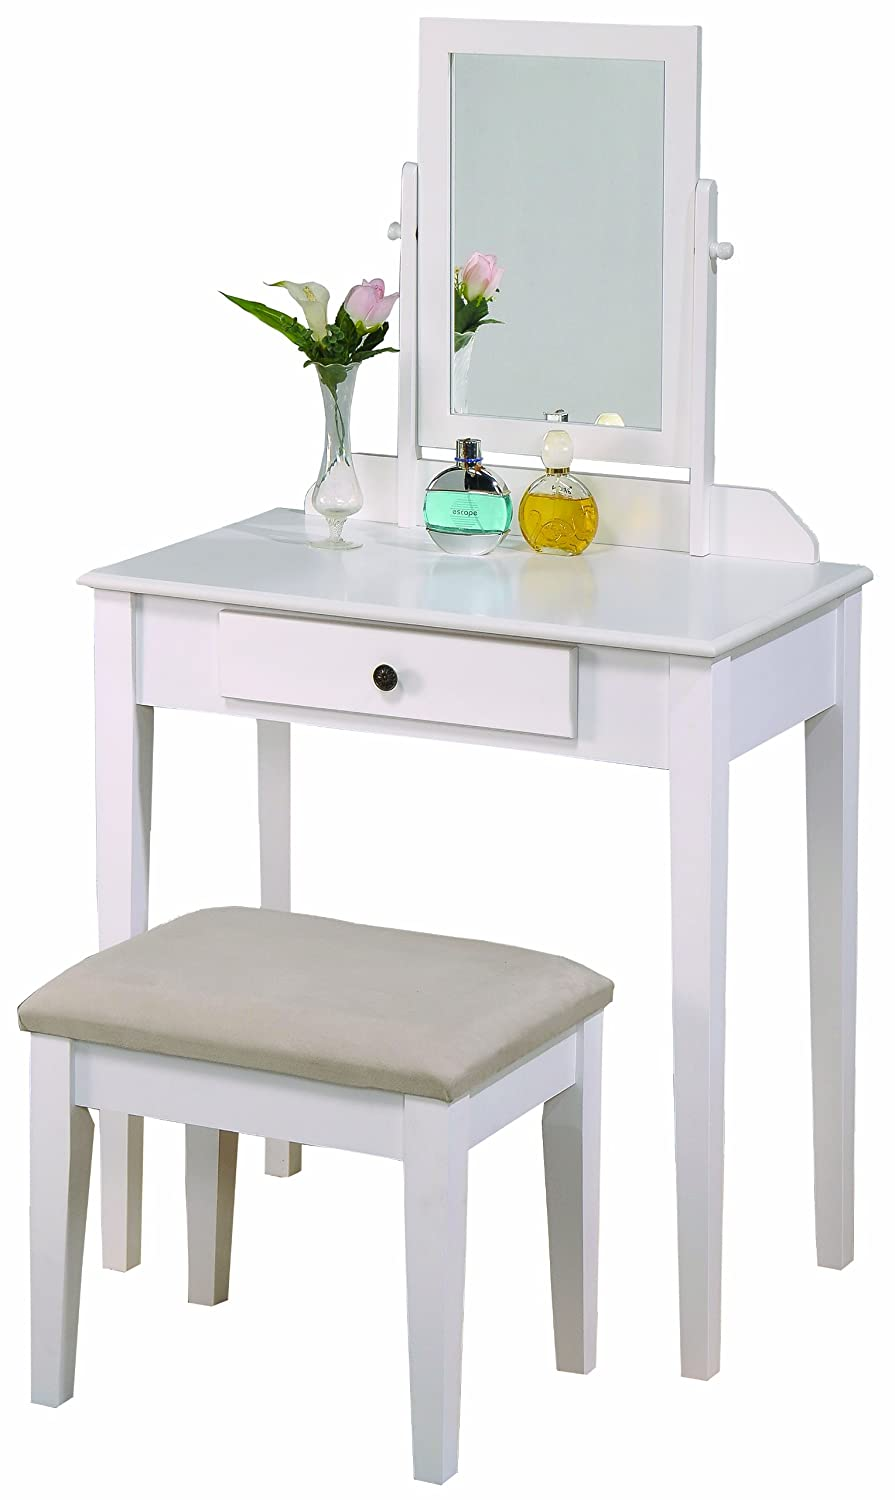 Crown Mark Iris Vanity Table Stool, White Finish with Beige Seat